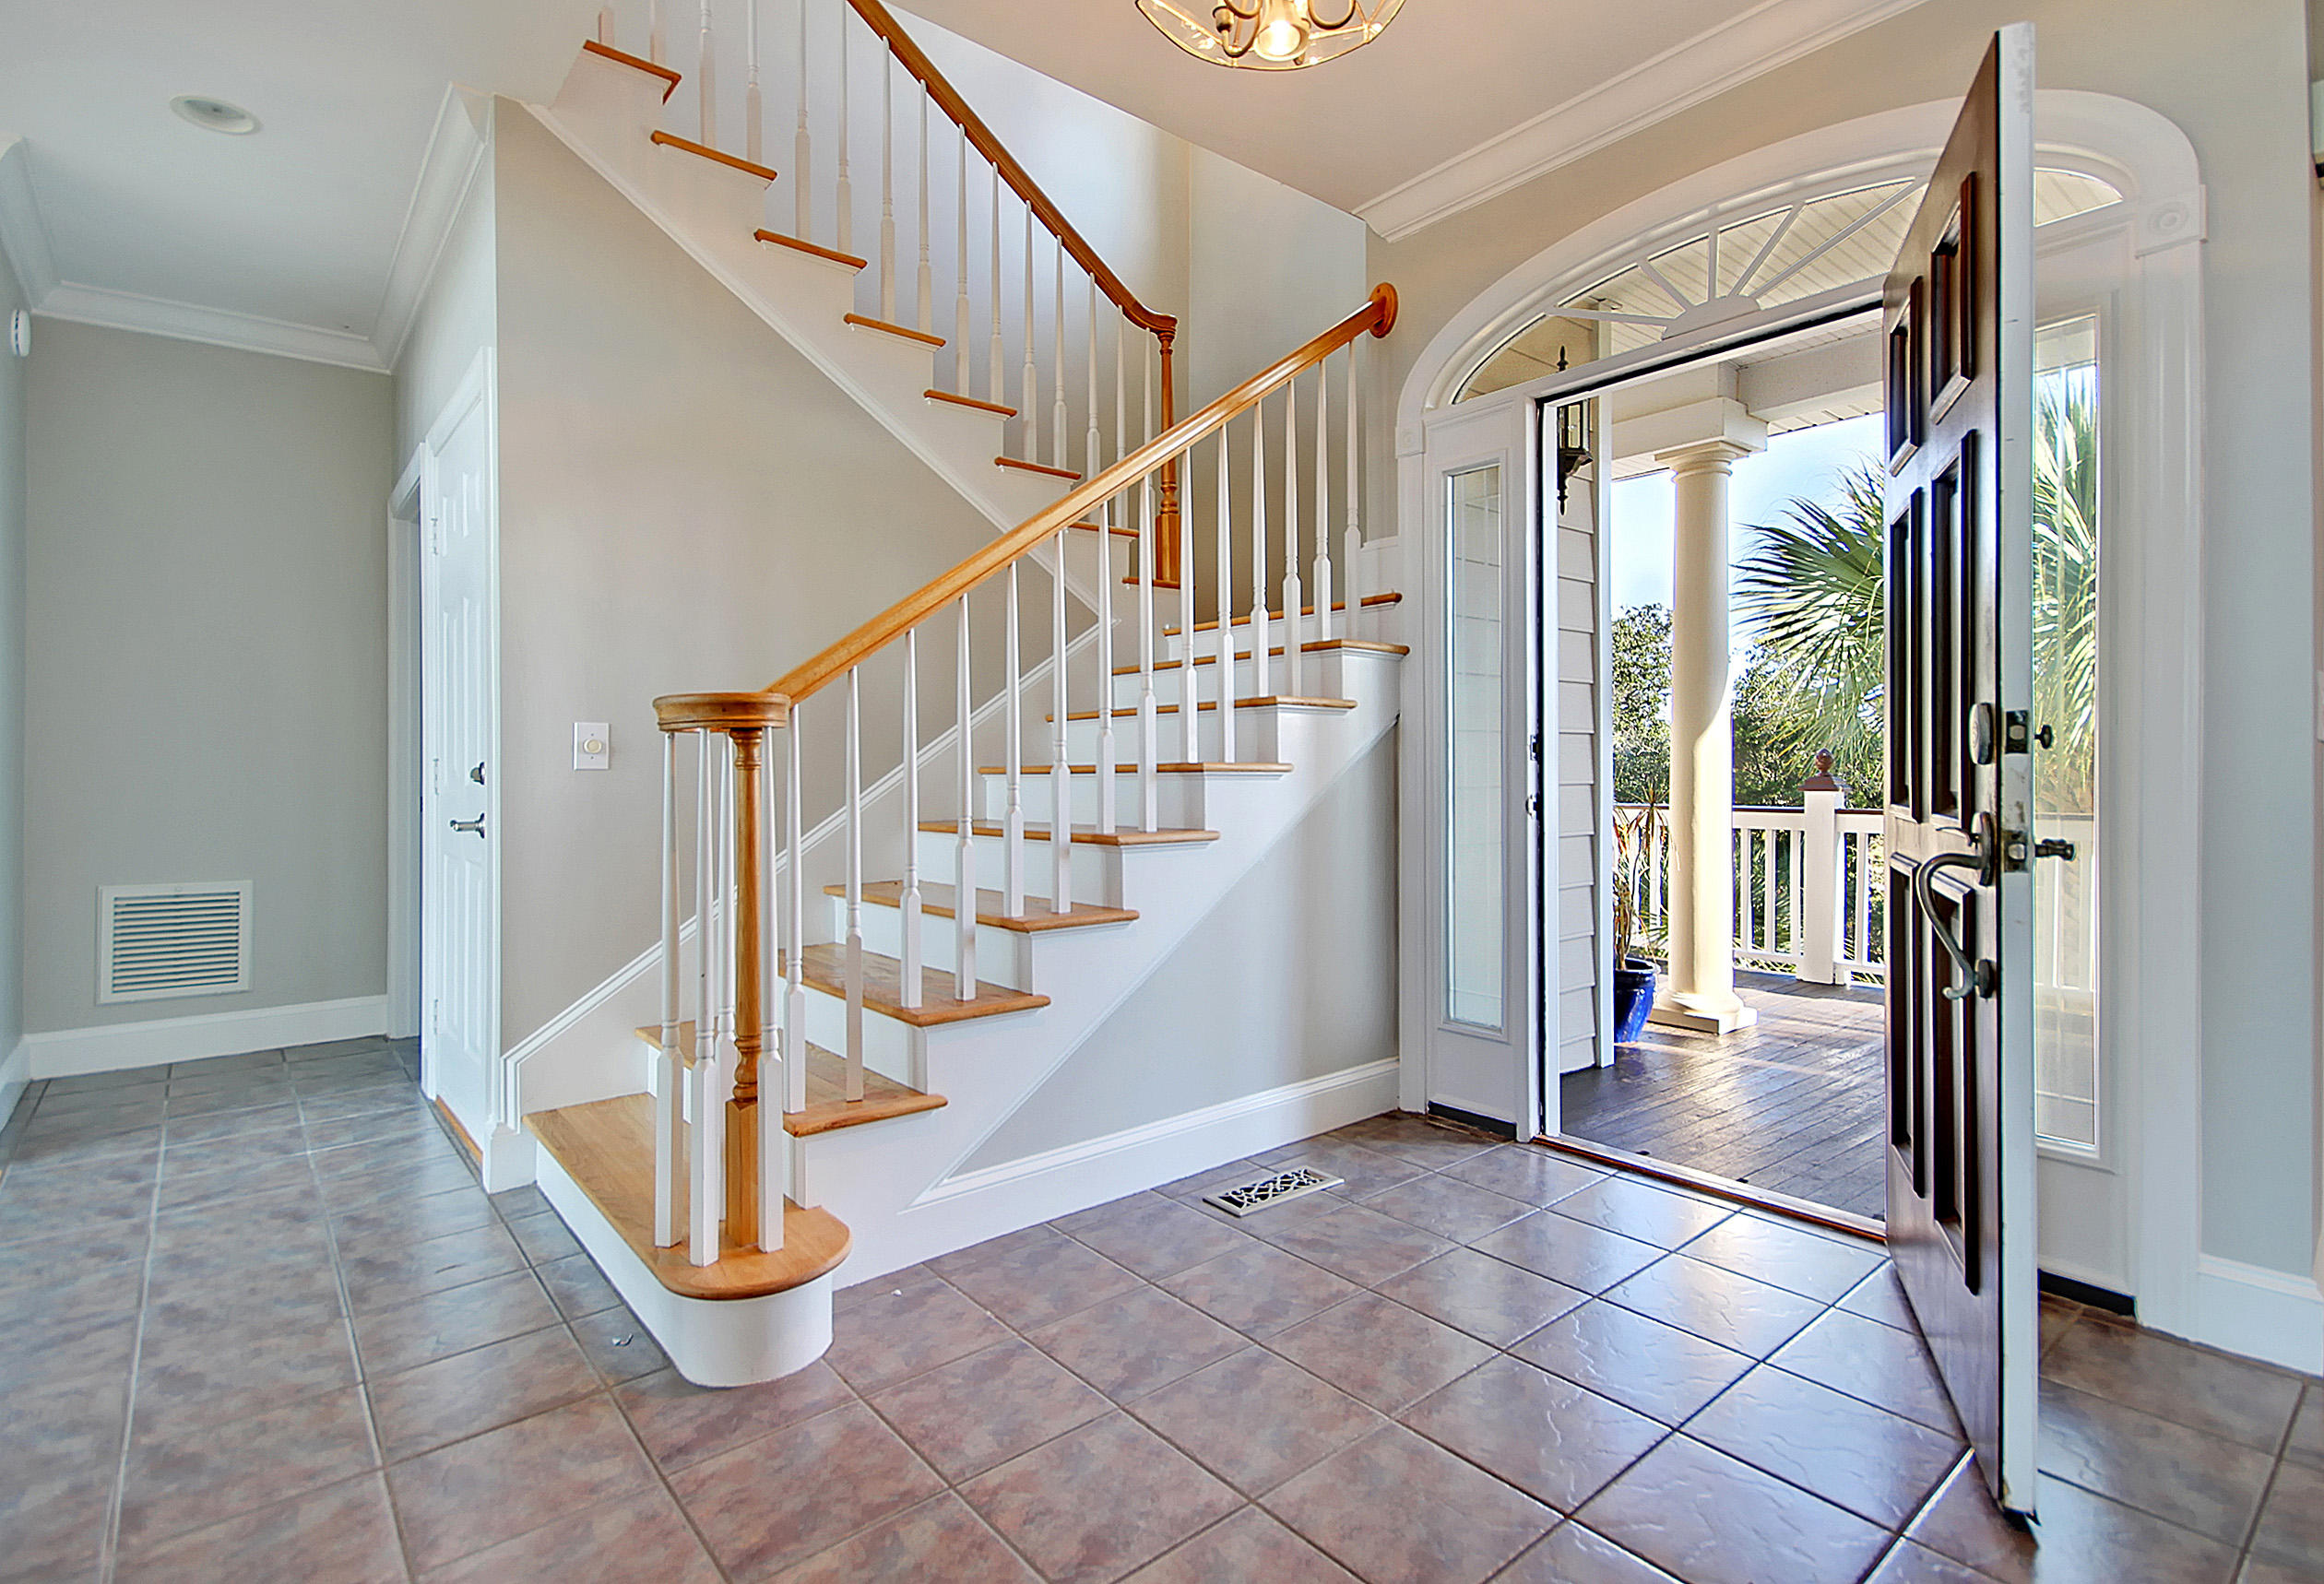 Wild Dunes Homes For Sale - 21 Seagrass, Isle of Palms, SC - 6